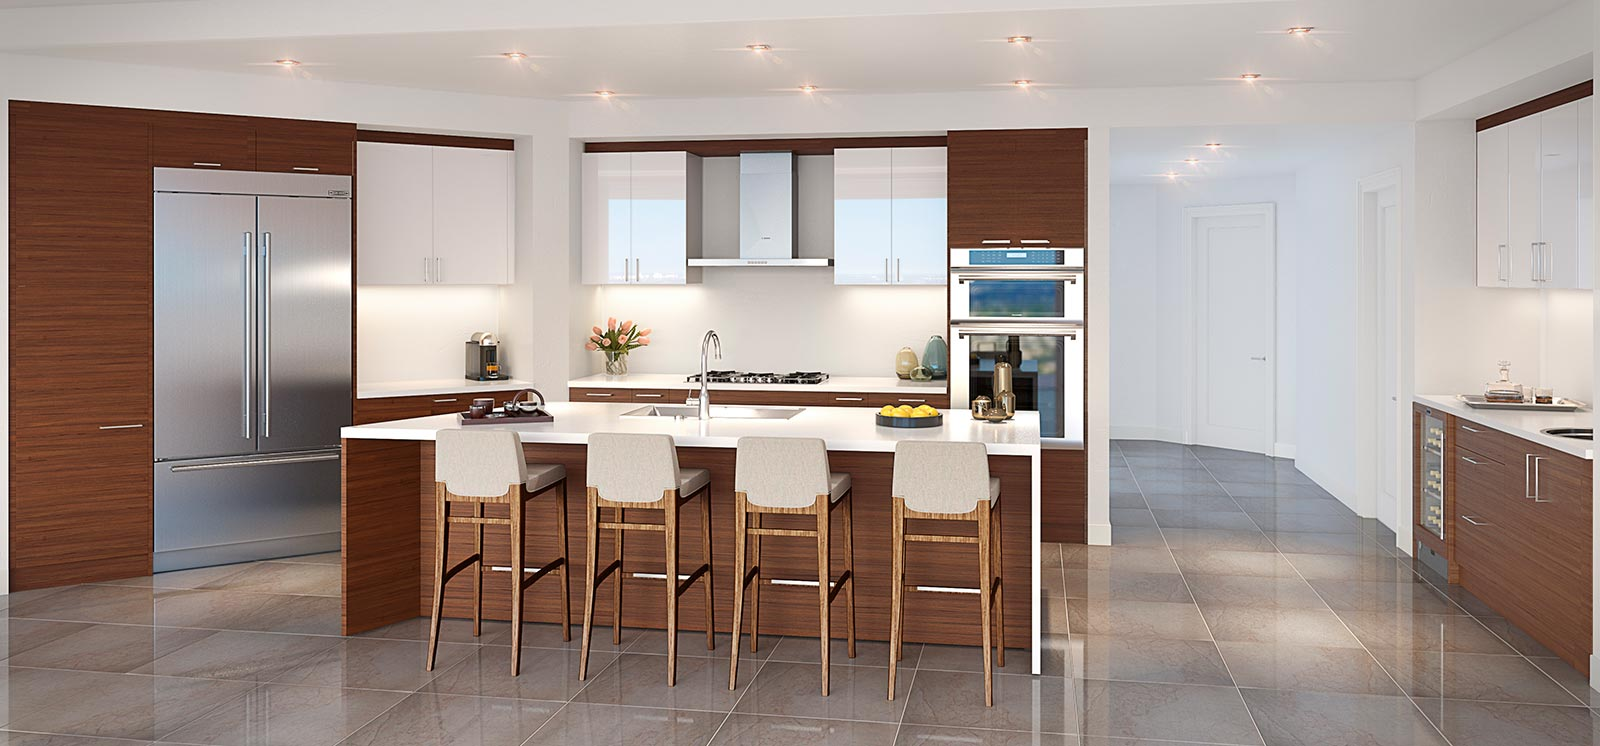 100 Las Olas Kitchen Rendering Metro